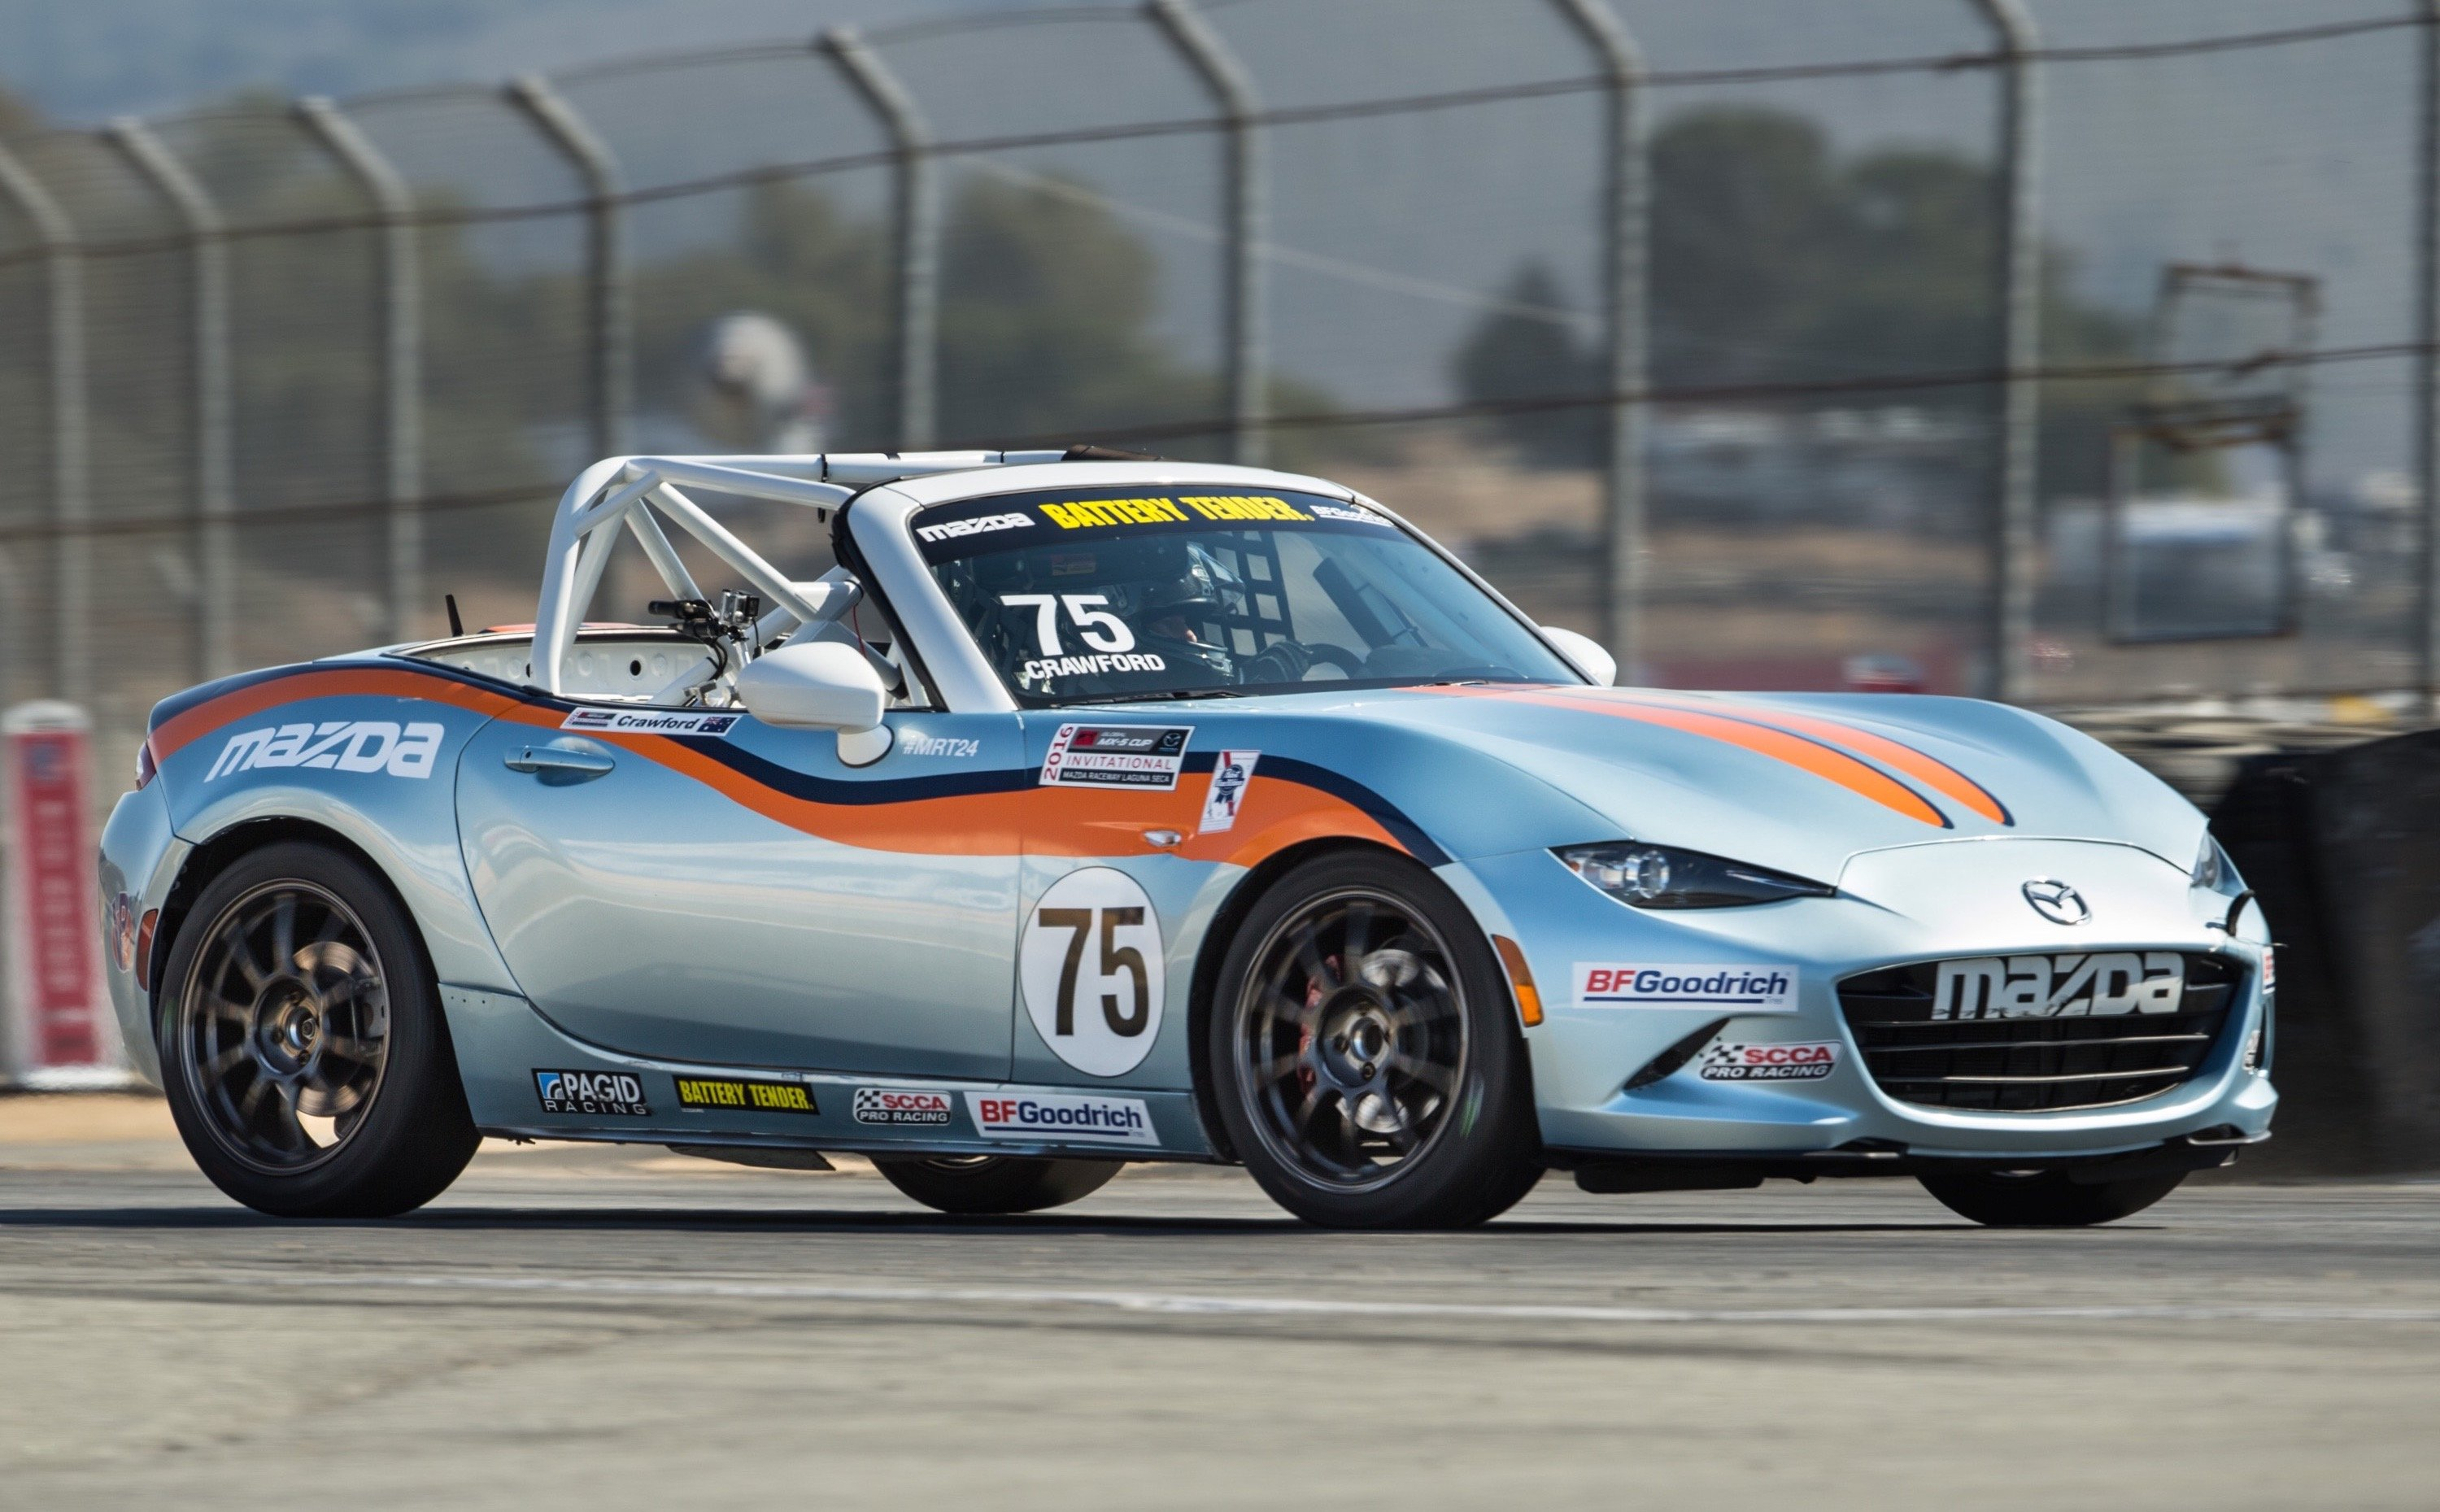 Fantastic 2016 Mazda MX5 Cup Global Invitational No Podium But At